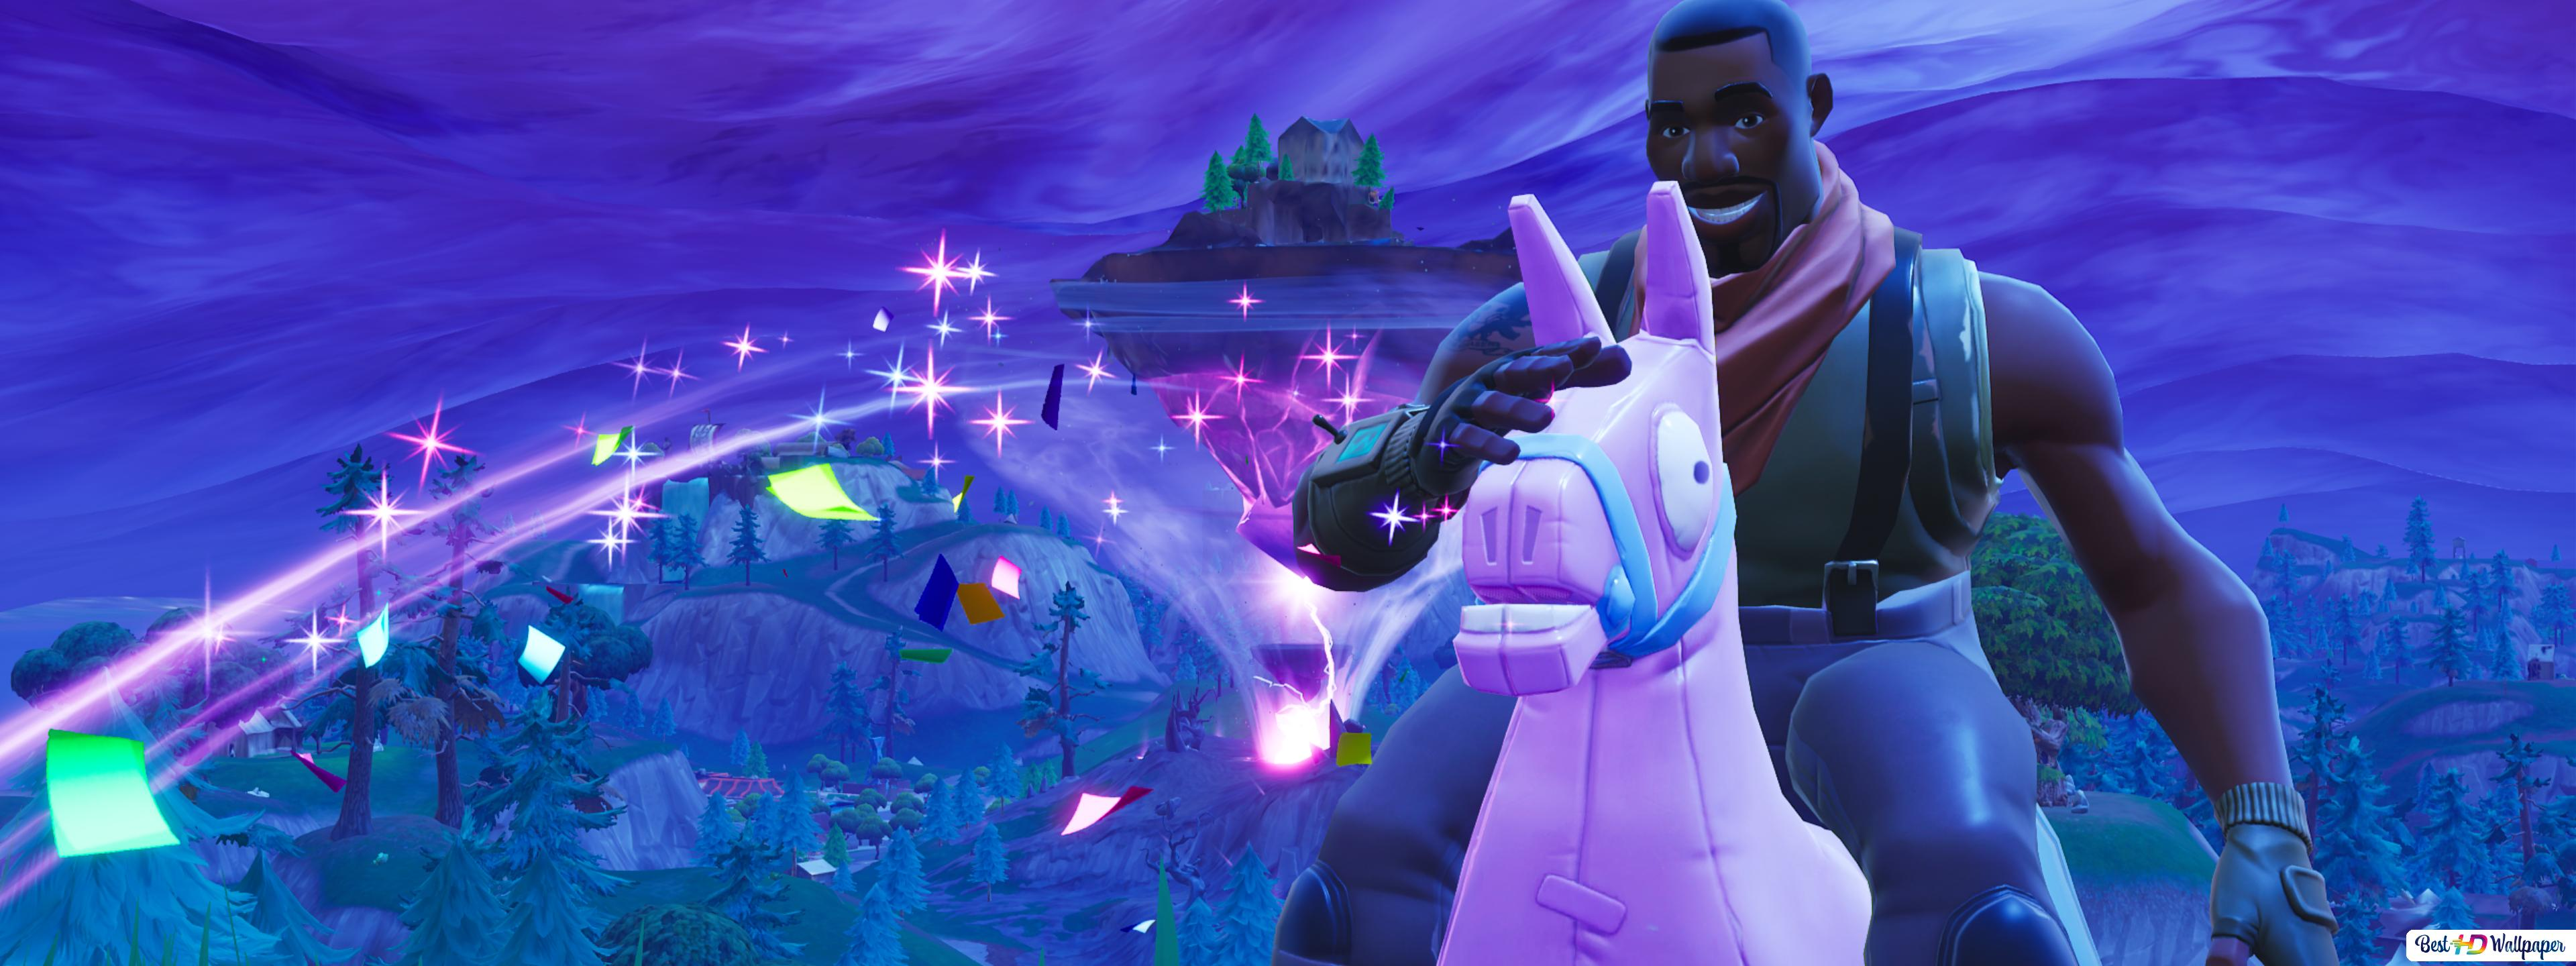 Giddy Up Fortnite Hd Wallpaper Download